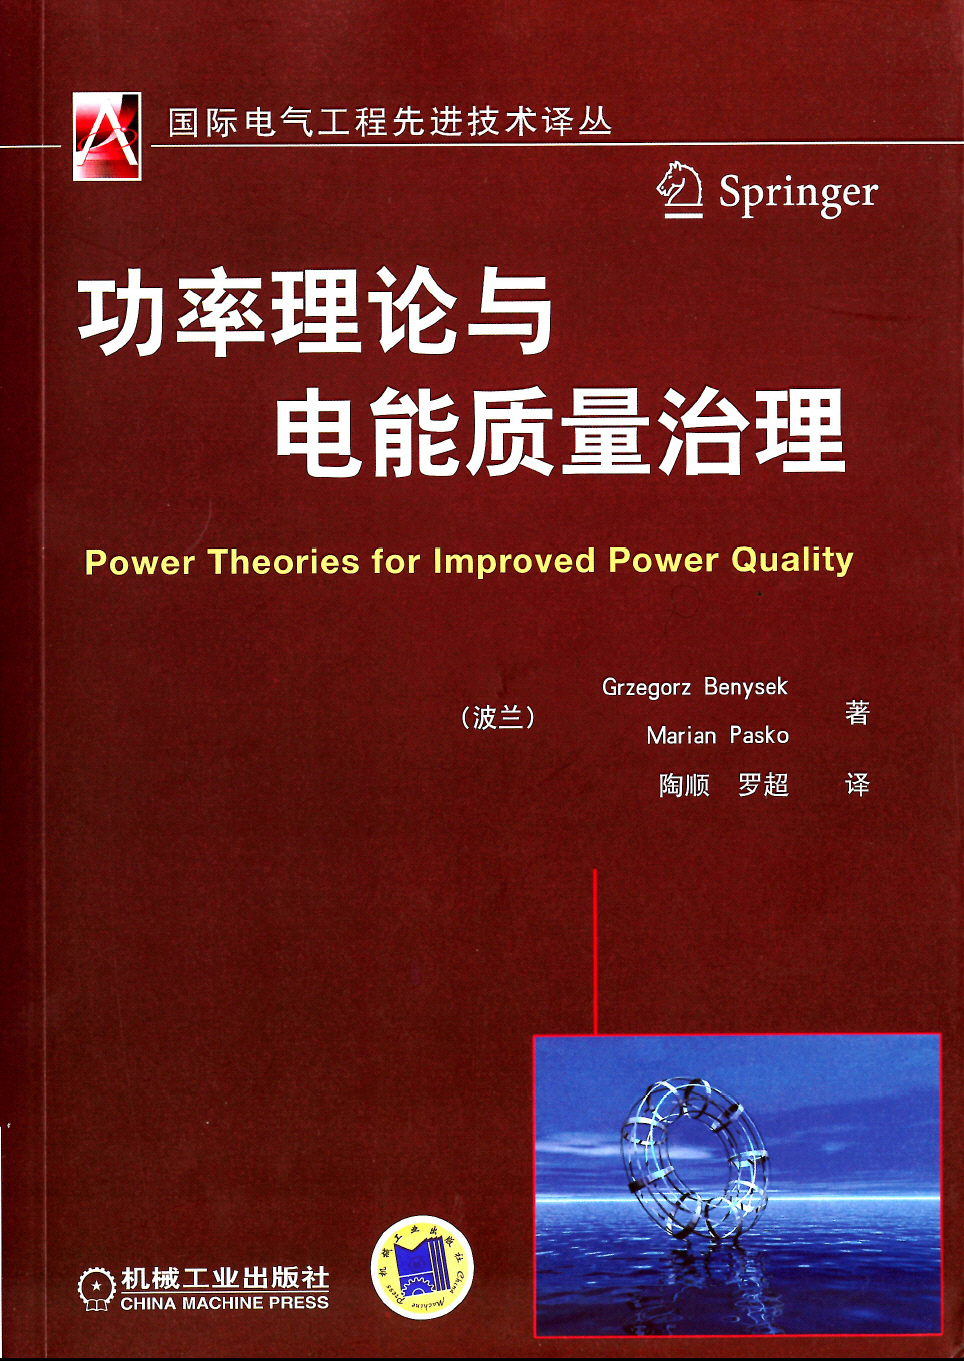 Power_Theories_for_Improved_Power_Quality_G.Benysek.